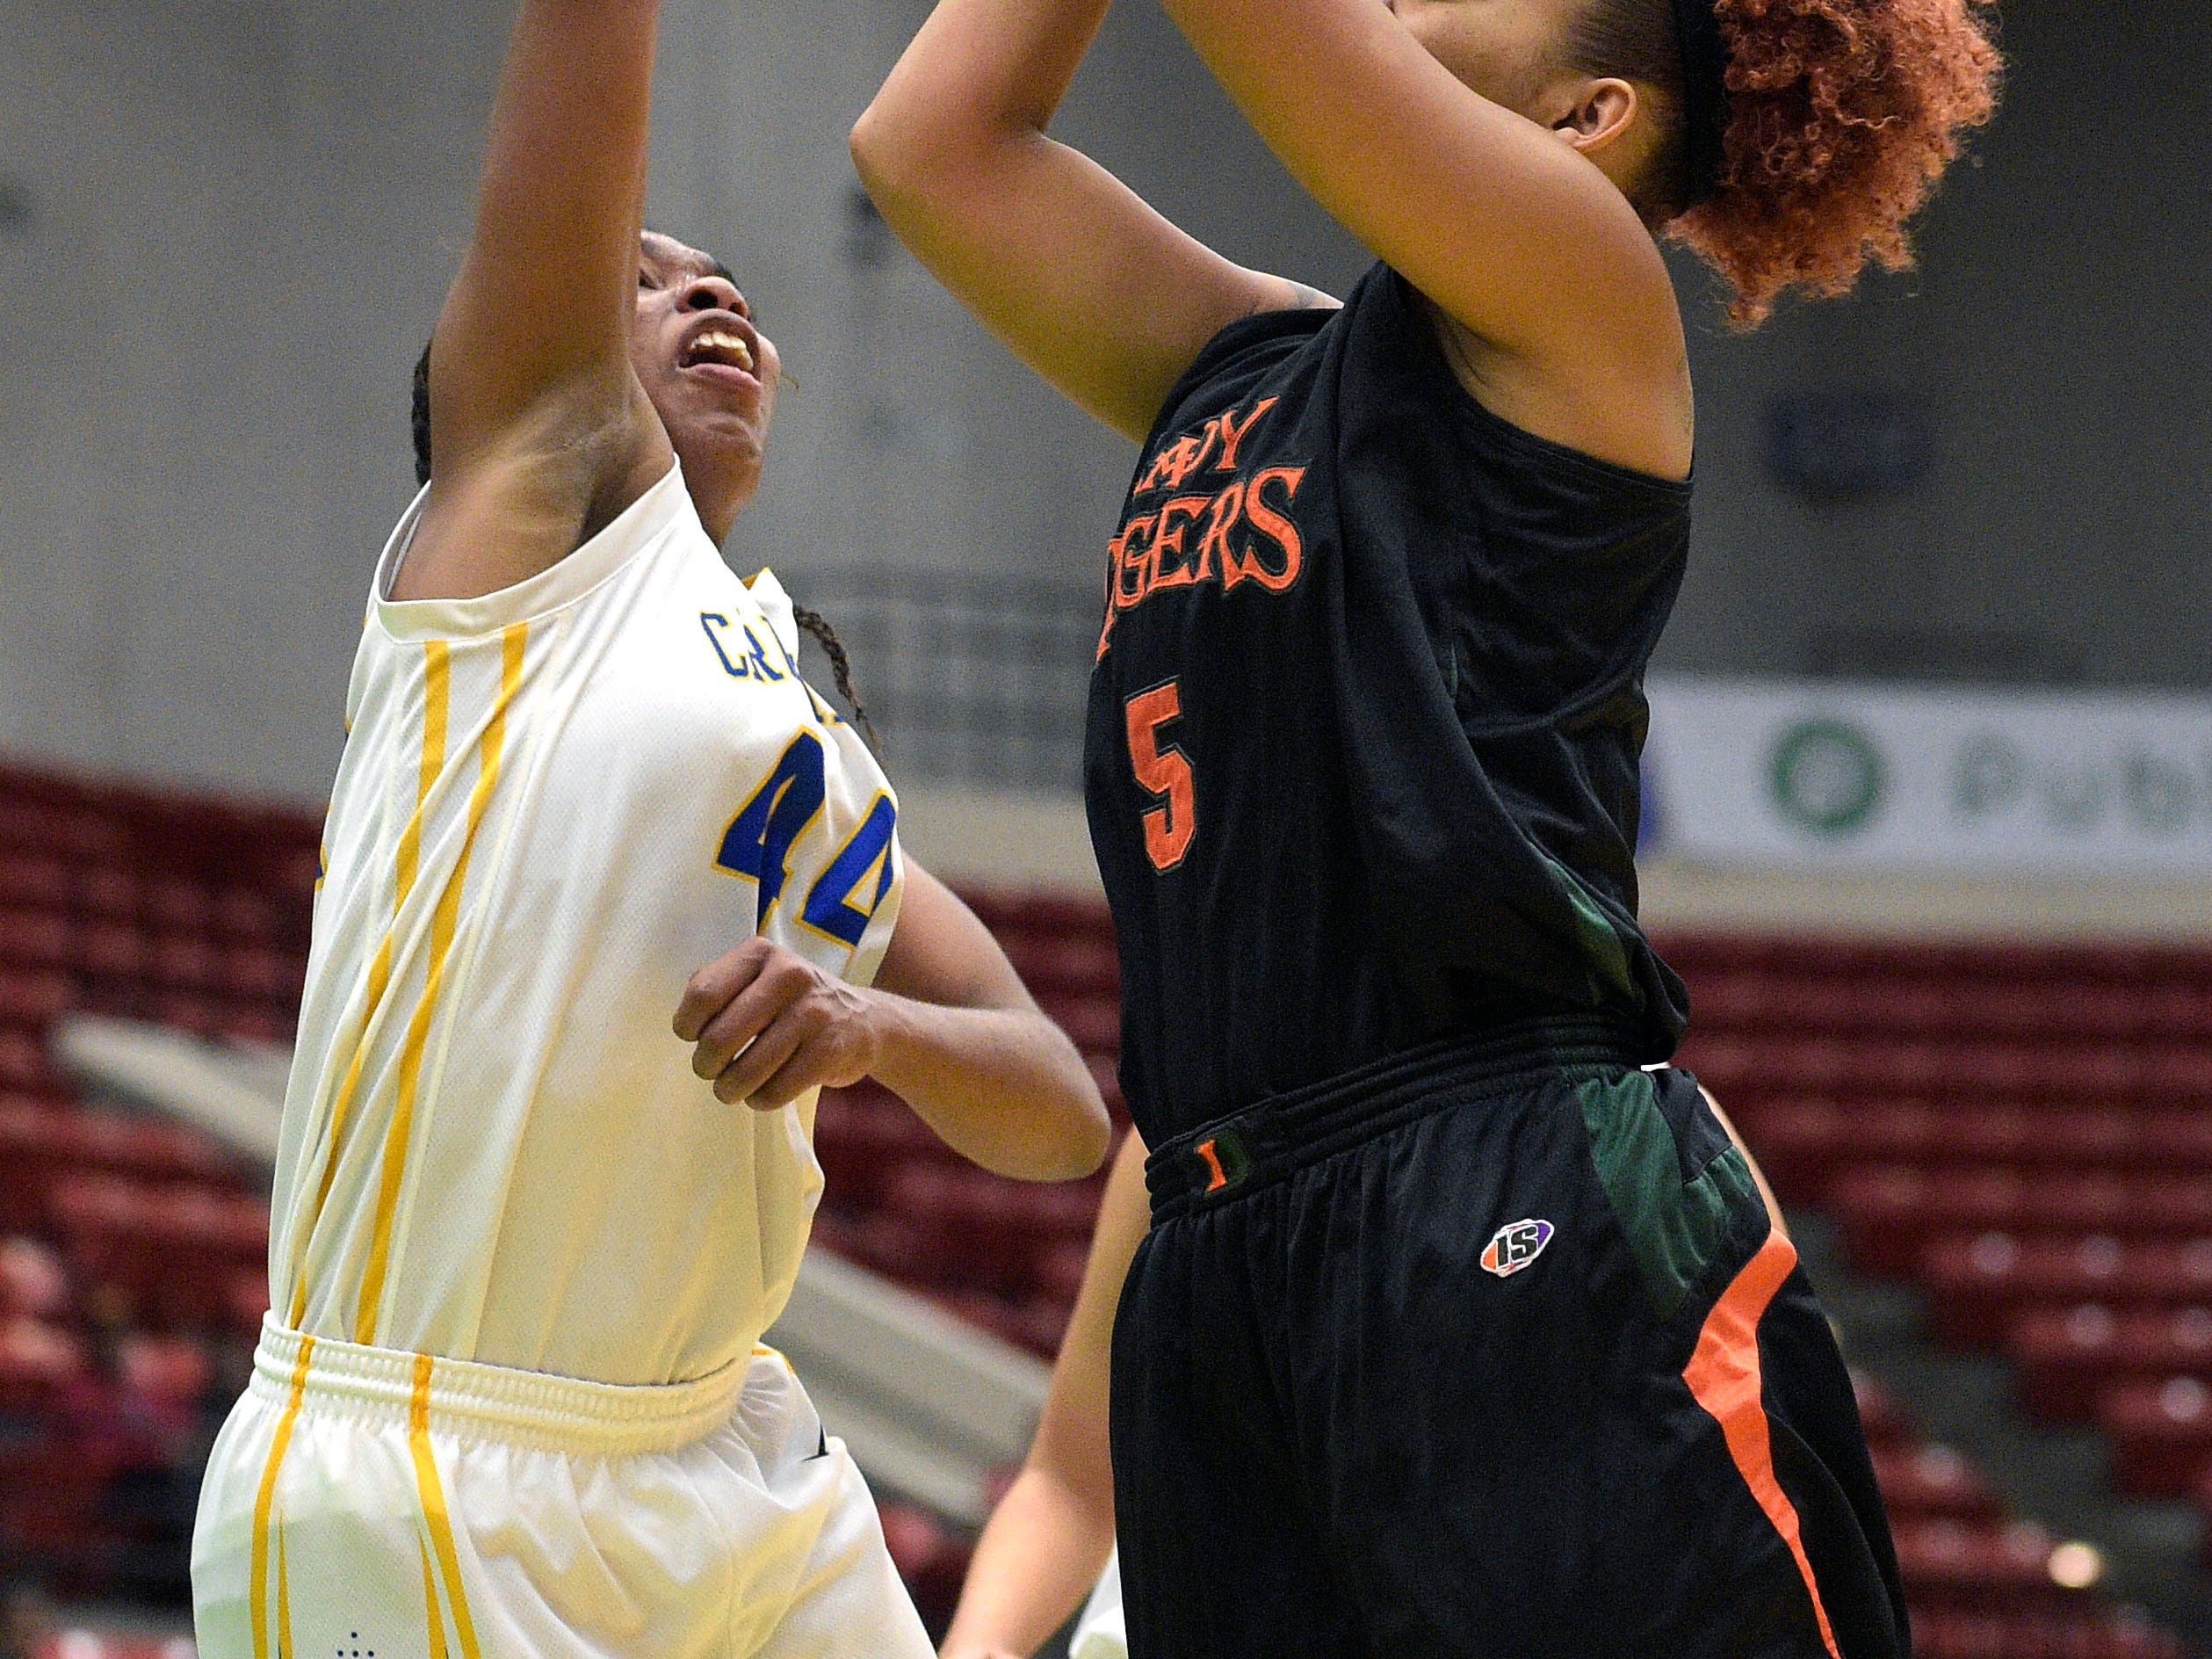 Dunbar's Alicia Johnson (5) puts up a shot in front of Cardinal Newman's Tytionia Adderly (44) during a girls basketball game at the FHSAA State Finals, Tuesday, Feb. 17, 2015, in Lakeland, Fla.(Photo/Phelan M. Ebenhack)